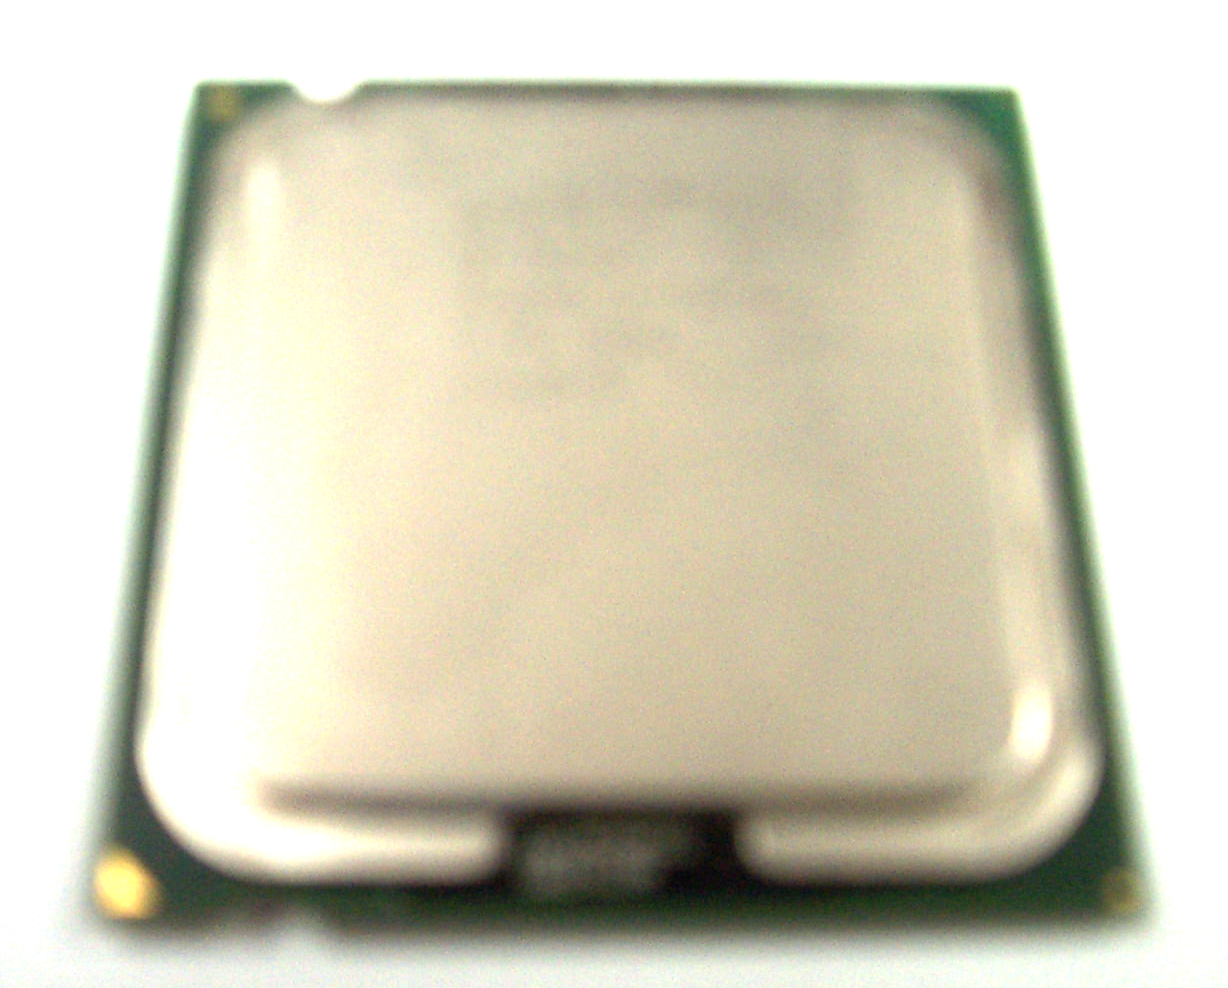 Intel SL7PW Pentium 4 3.2GHz 540J 800MHz 1MB Socket 775 Processor